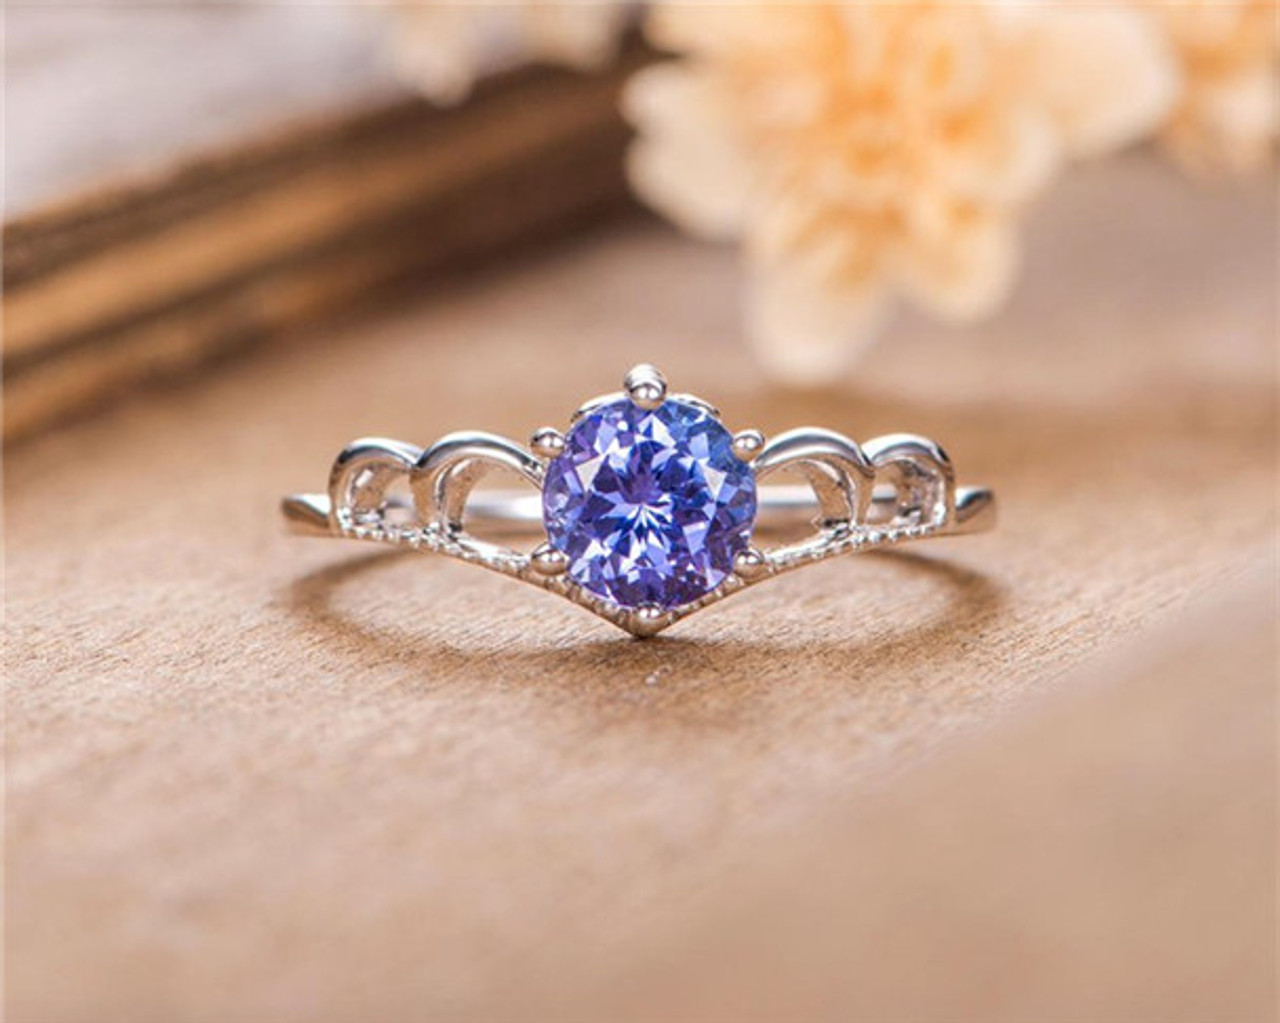 Round Cut Natural Tanzanite Engagement Ring White Gold Anniversary Gift For Women Simple May Birthstone